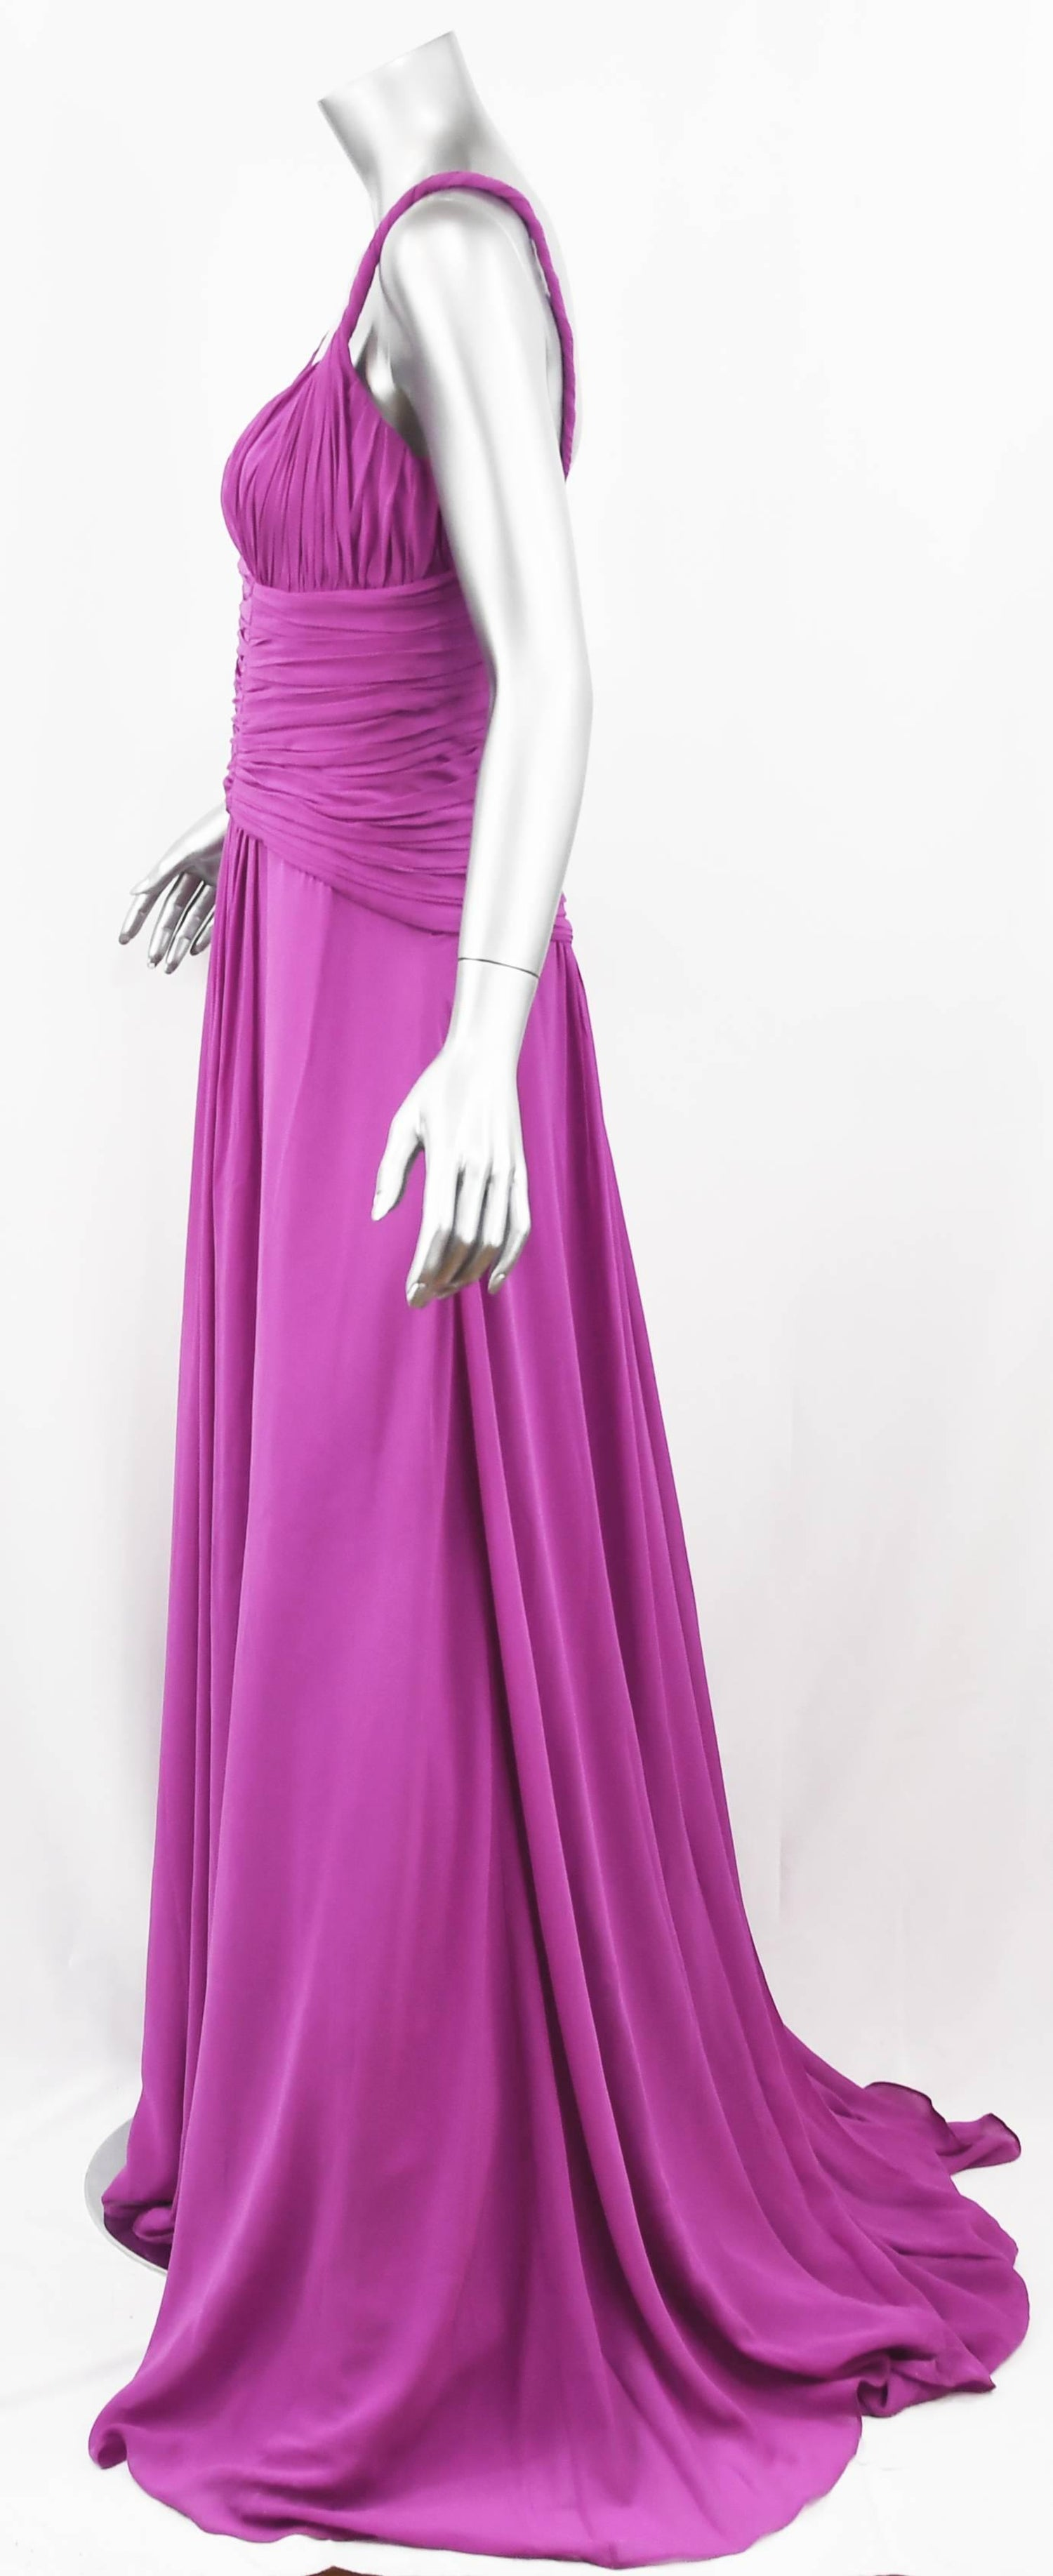 Emanuel Ungaro Long Chiffon Gown in Magenta, Size 4 For Sale at 1stdibs